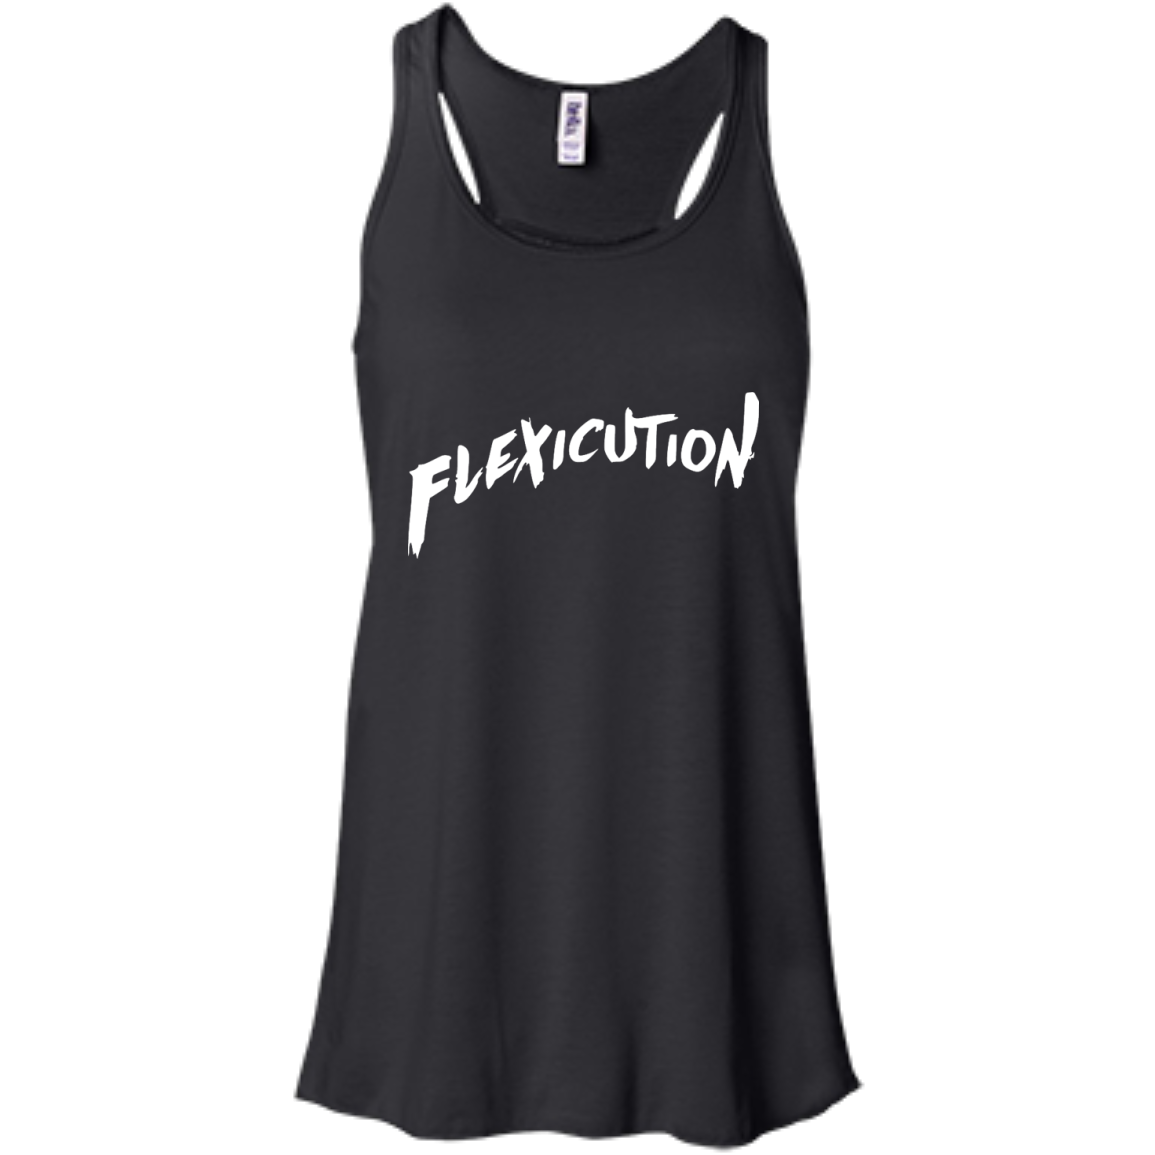 image 533px Flexicution Logic T Shirt, Hoodies, Tank Top